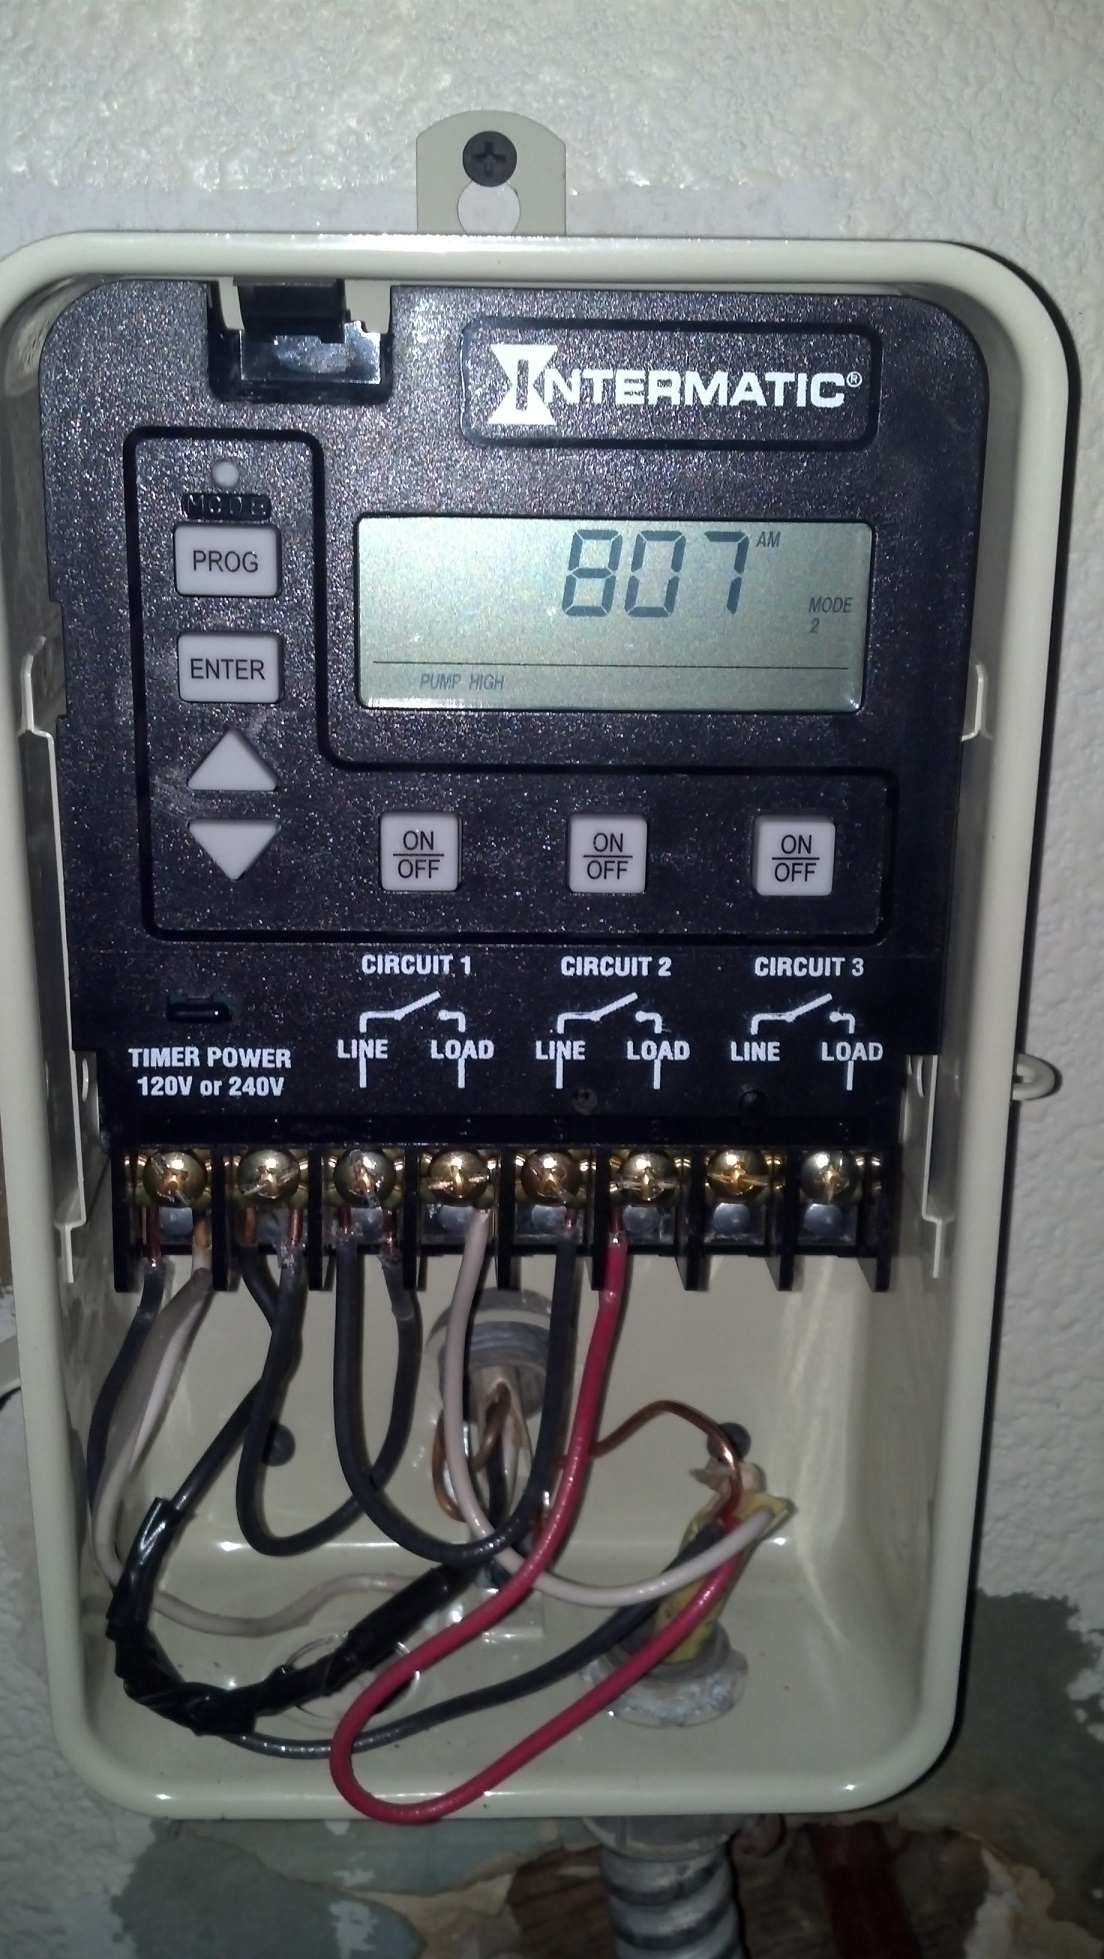 how to wire a pe153 digital timer to a 2 speed 230v motor 4 pole solenoid wiring diagram this guide shows you how to wire the basic functions of a pe153 digital timer to a representative 2 speed 240v motor it is fairly simply but it requires an